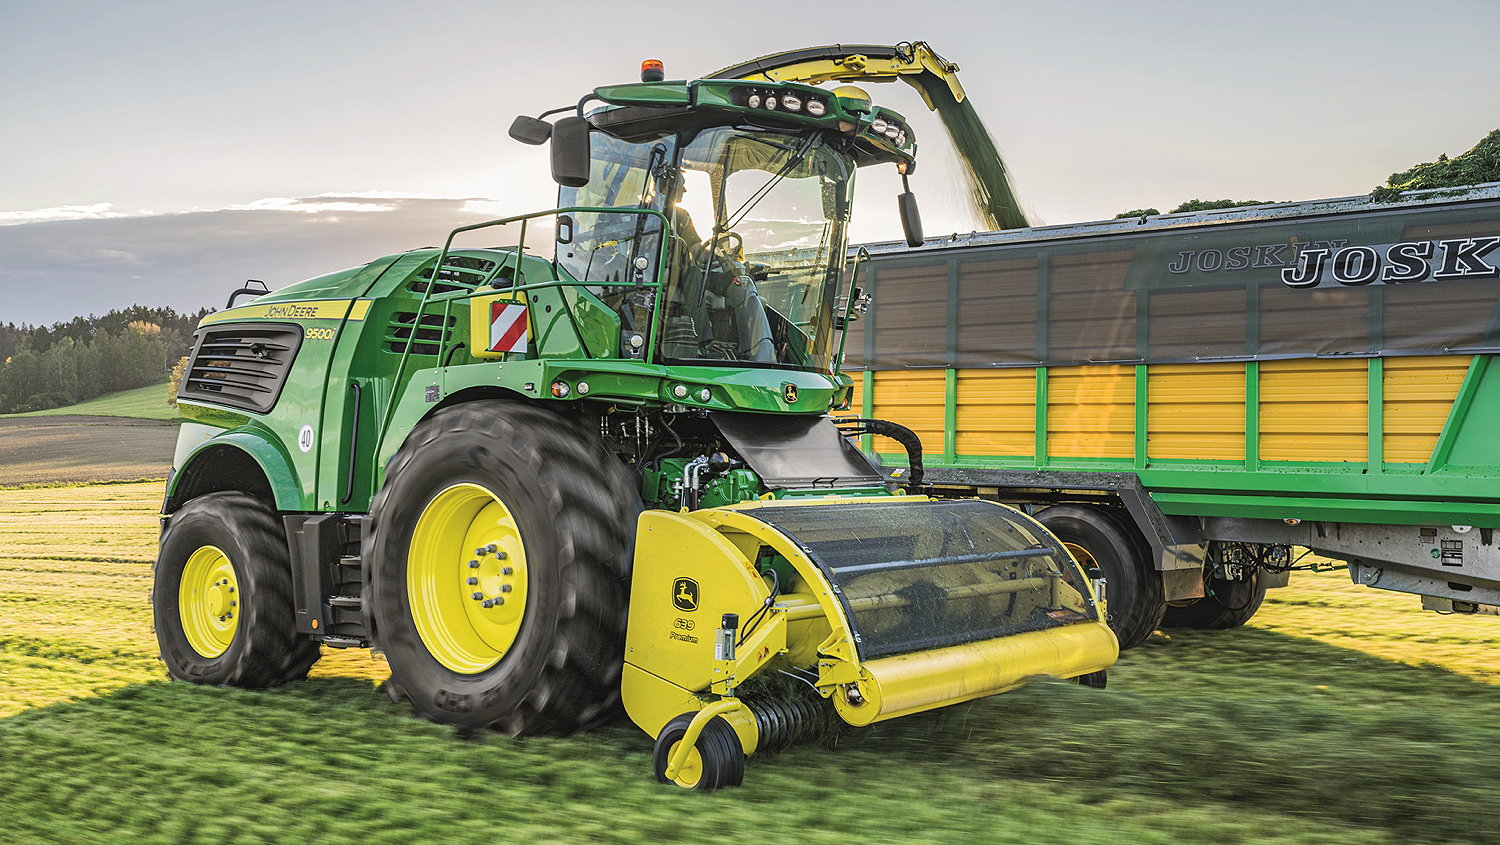 Deere's new 9500i self-propelled forager offers up to 76hp under load from its new JD18X diesel engine